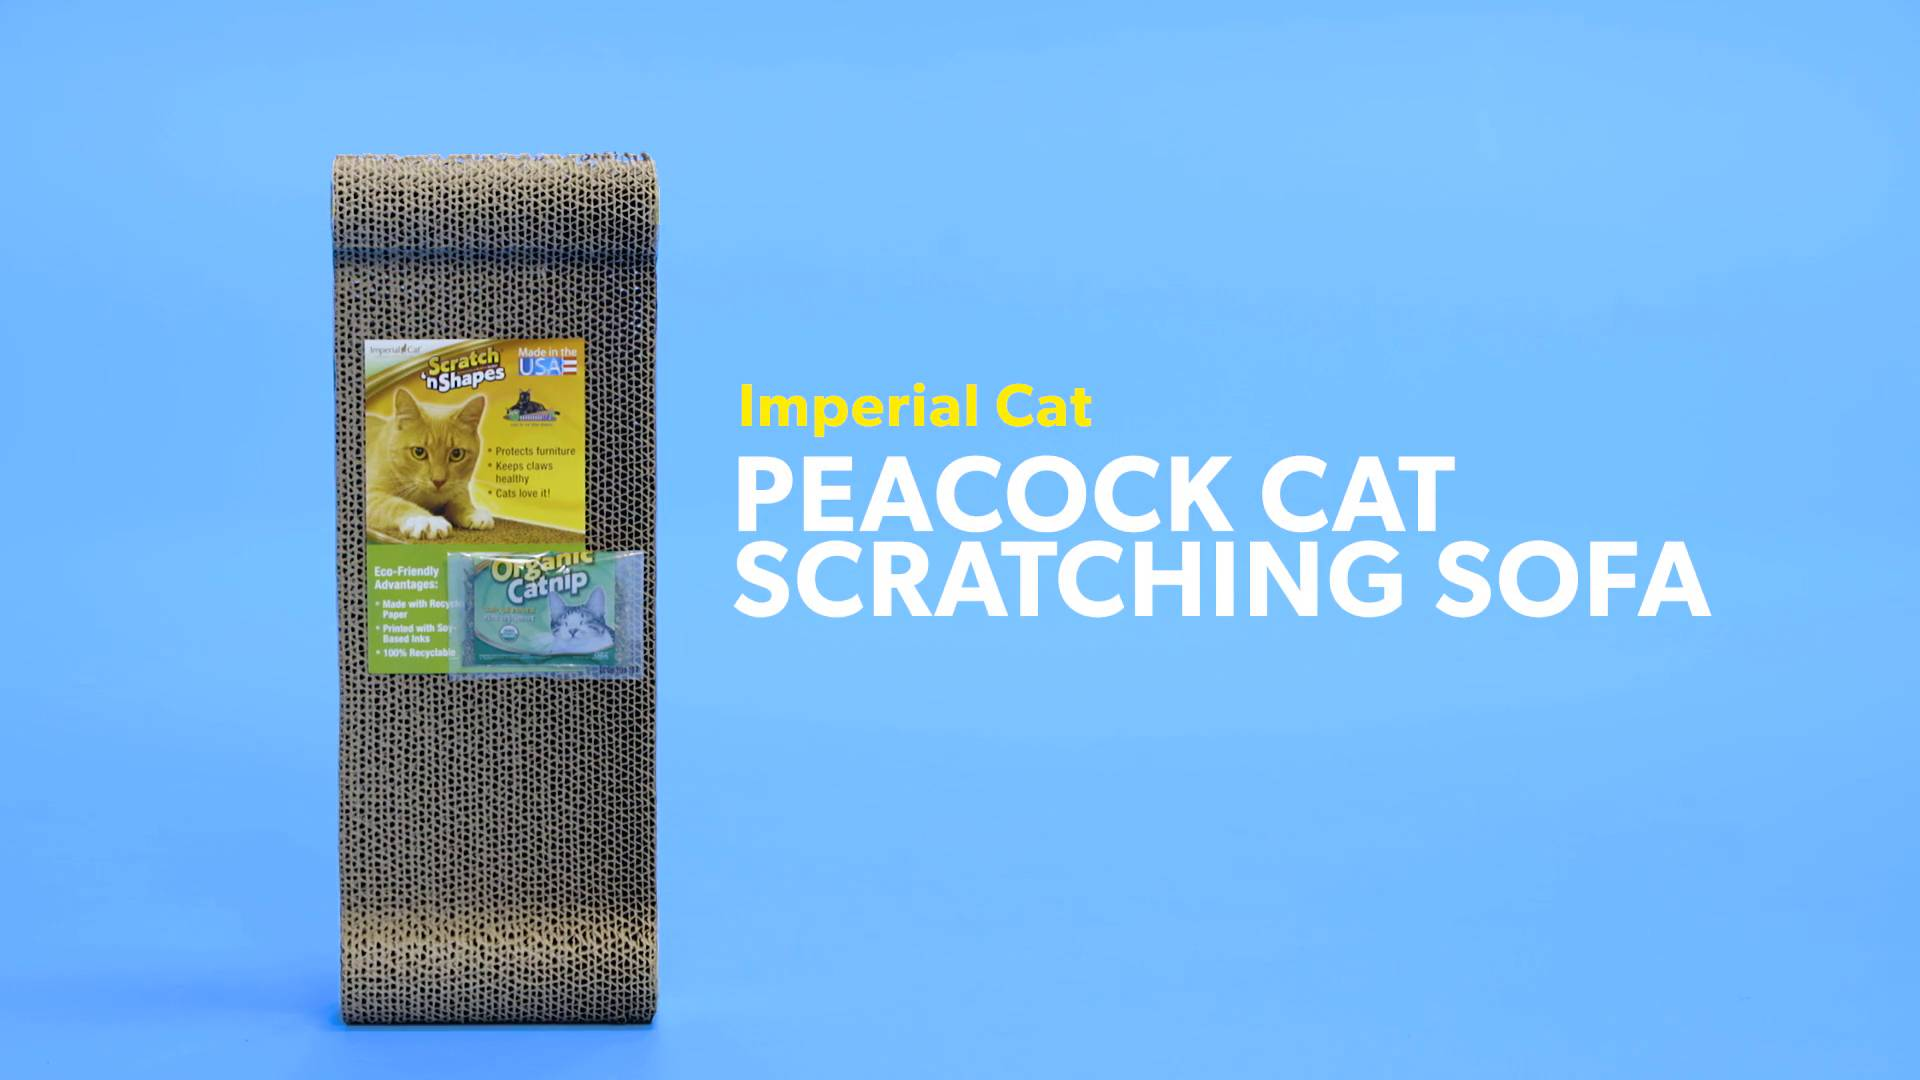 Imperial Cat Peacock Cat Scratching Sofa Chewy